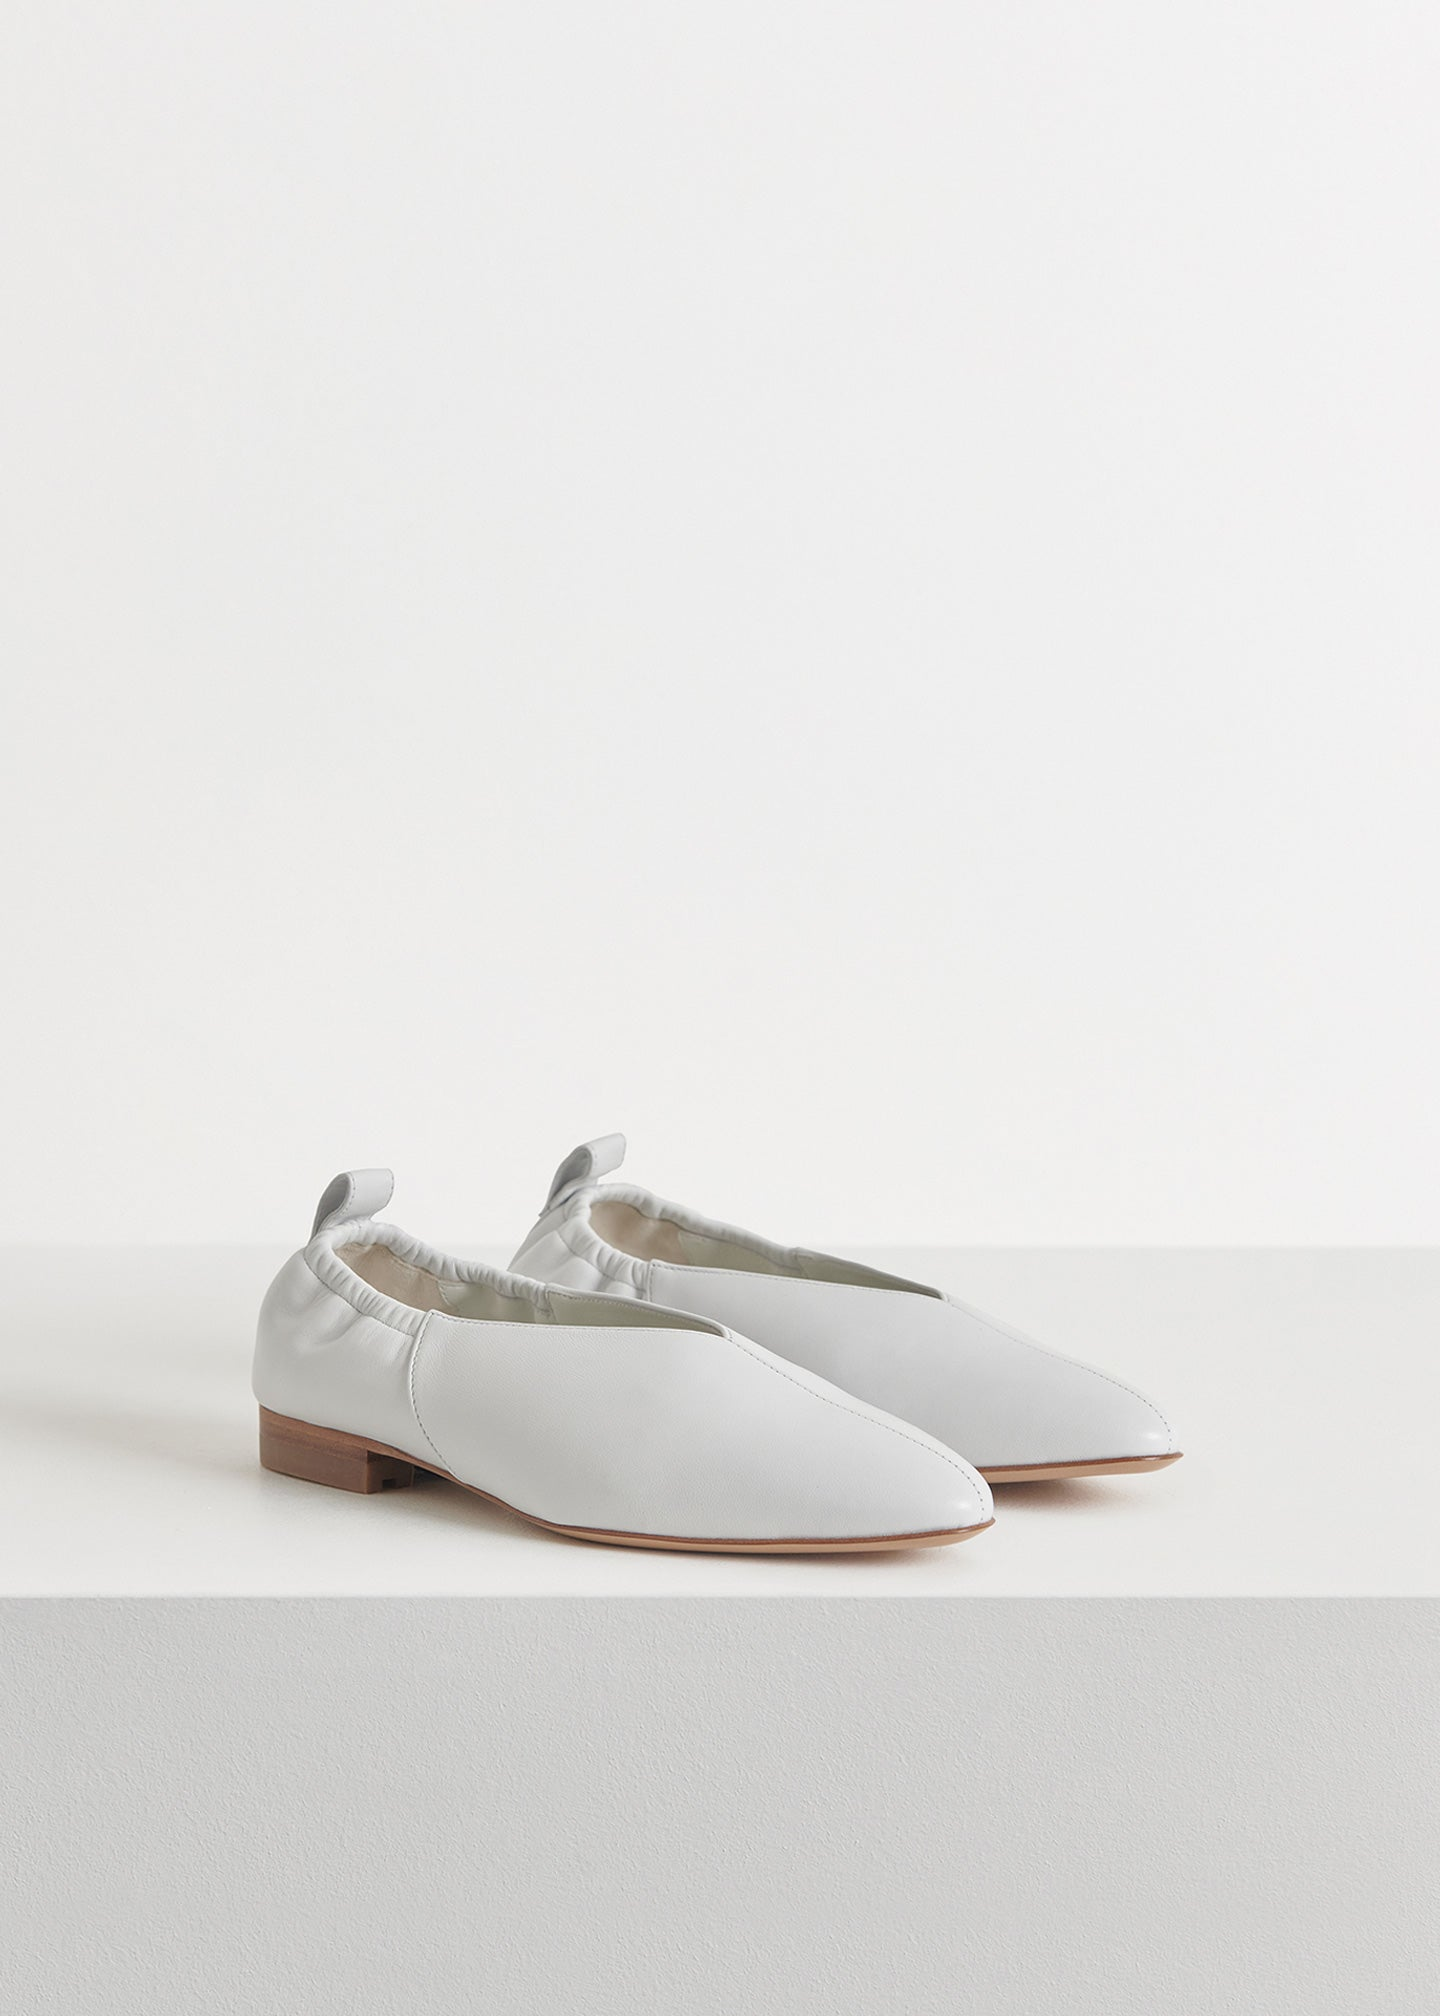 CO - Ballet Flat in Smooth Leather - Ivory